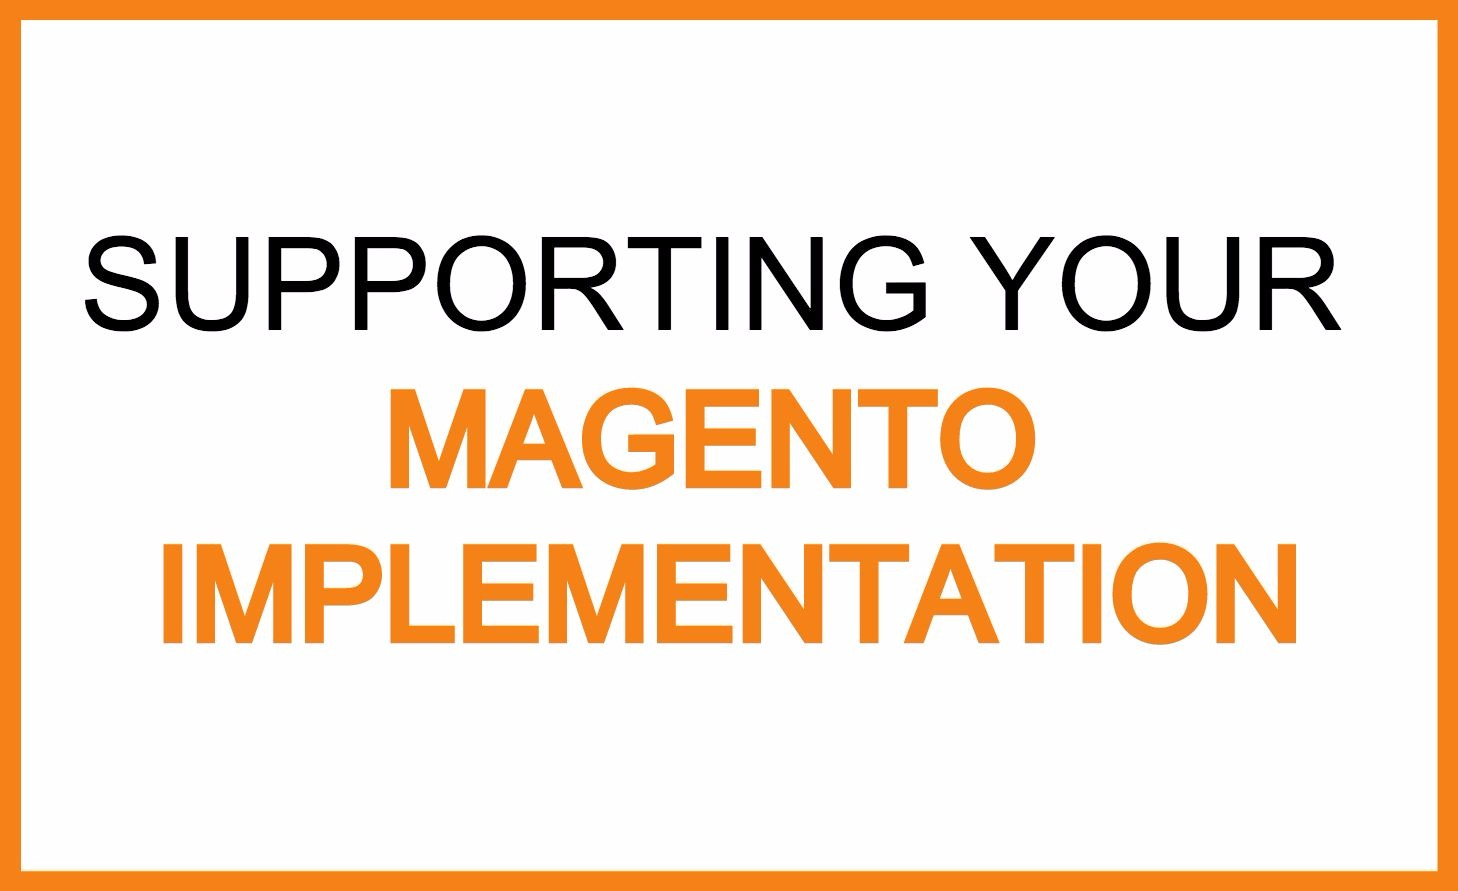 magento support managed services.jpg